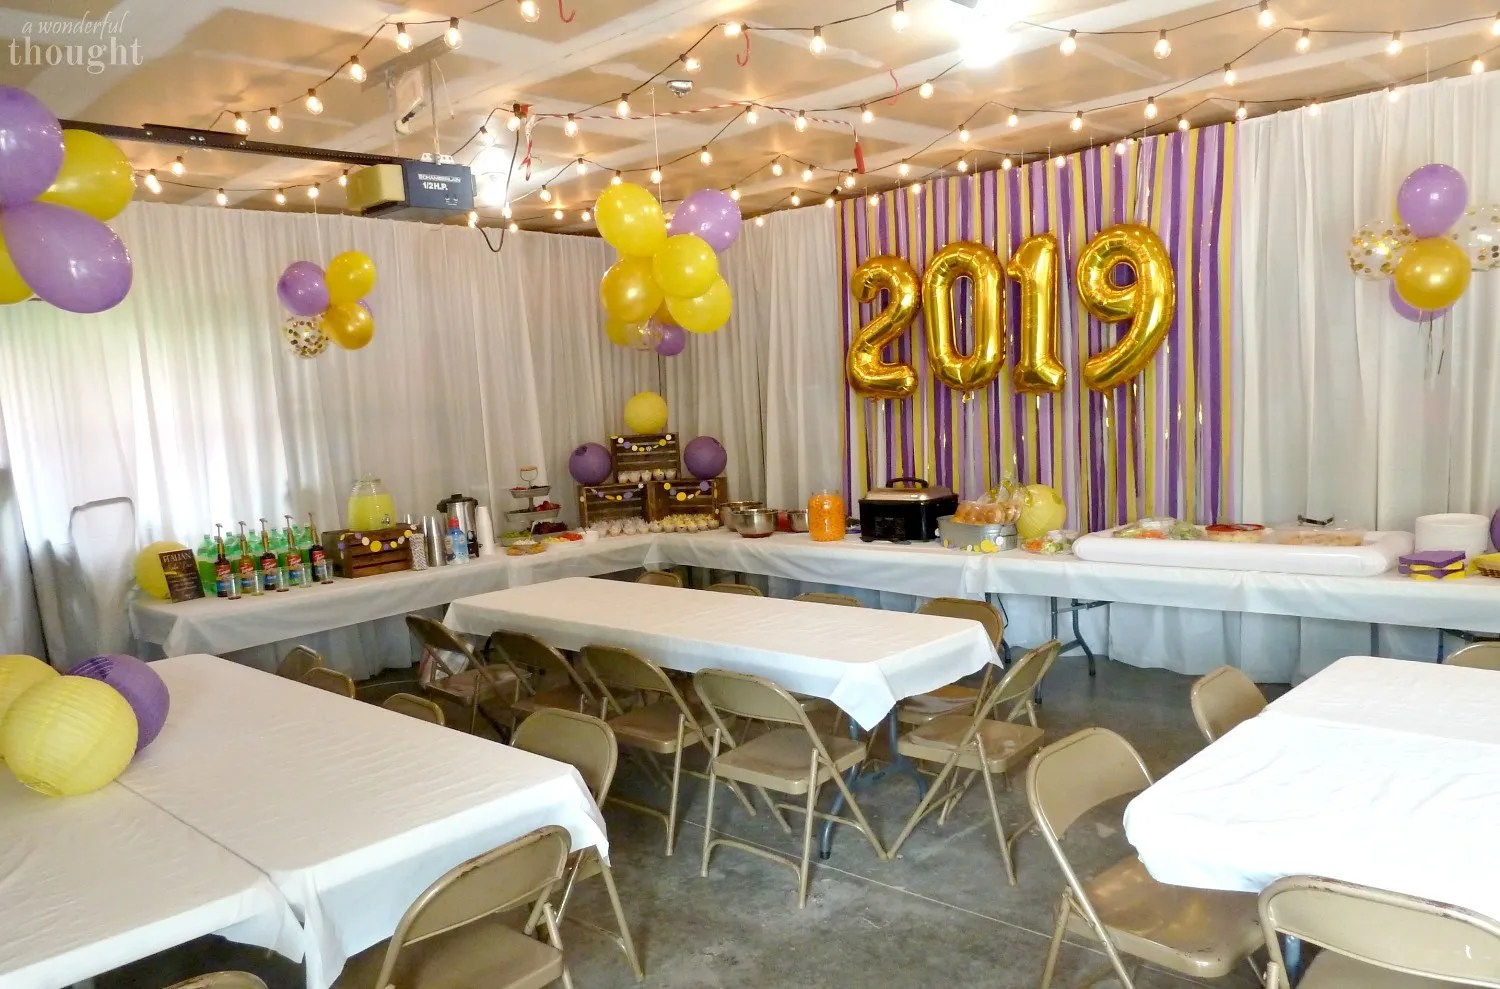 Graduation Party Ideas | Garage Party - A Wonderful Thought